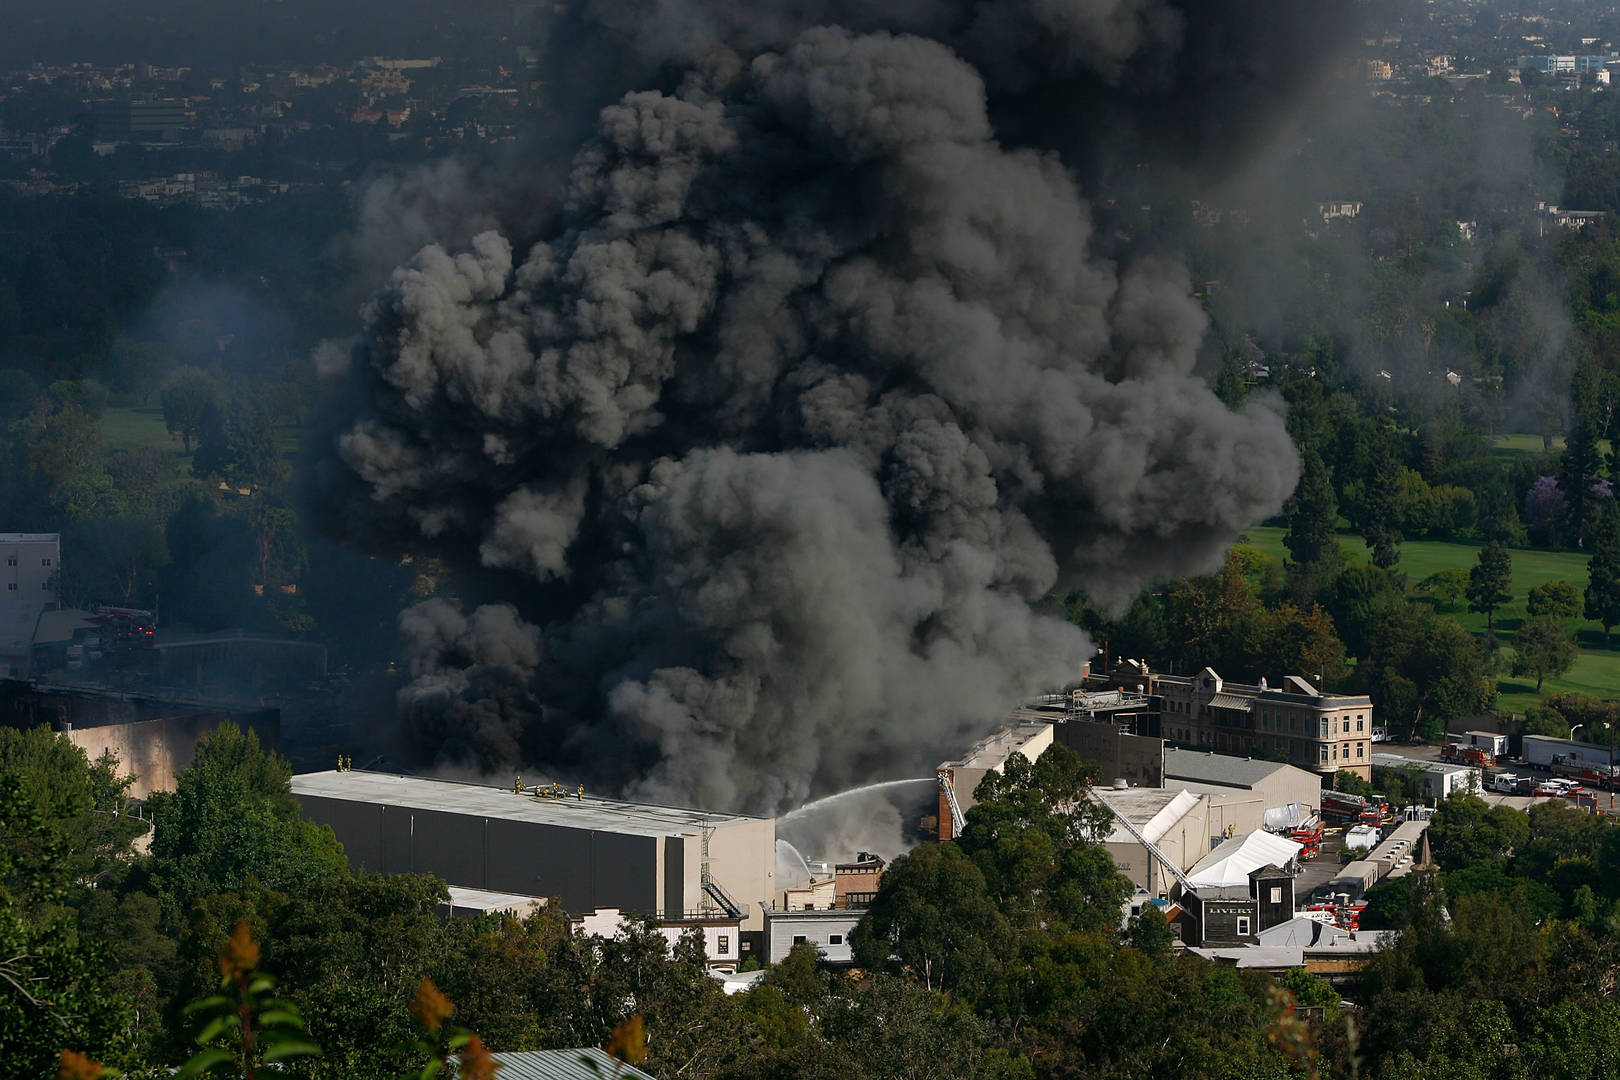 Eminem, Tupac & 50 Cent's Masters Destroyed In Massive 2008 Fire